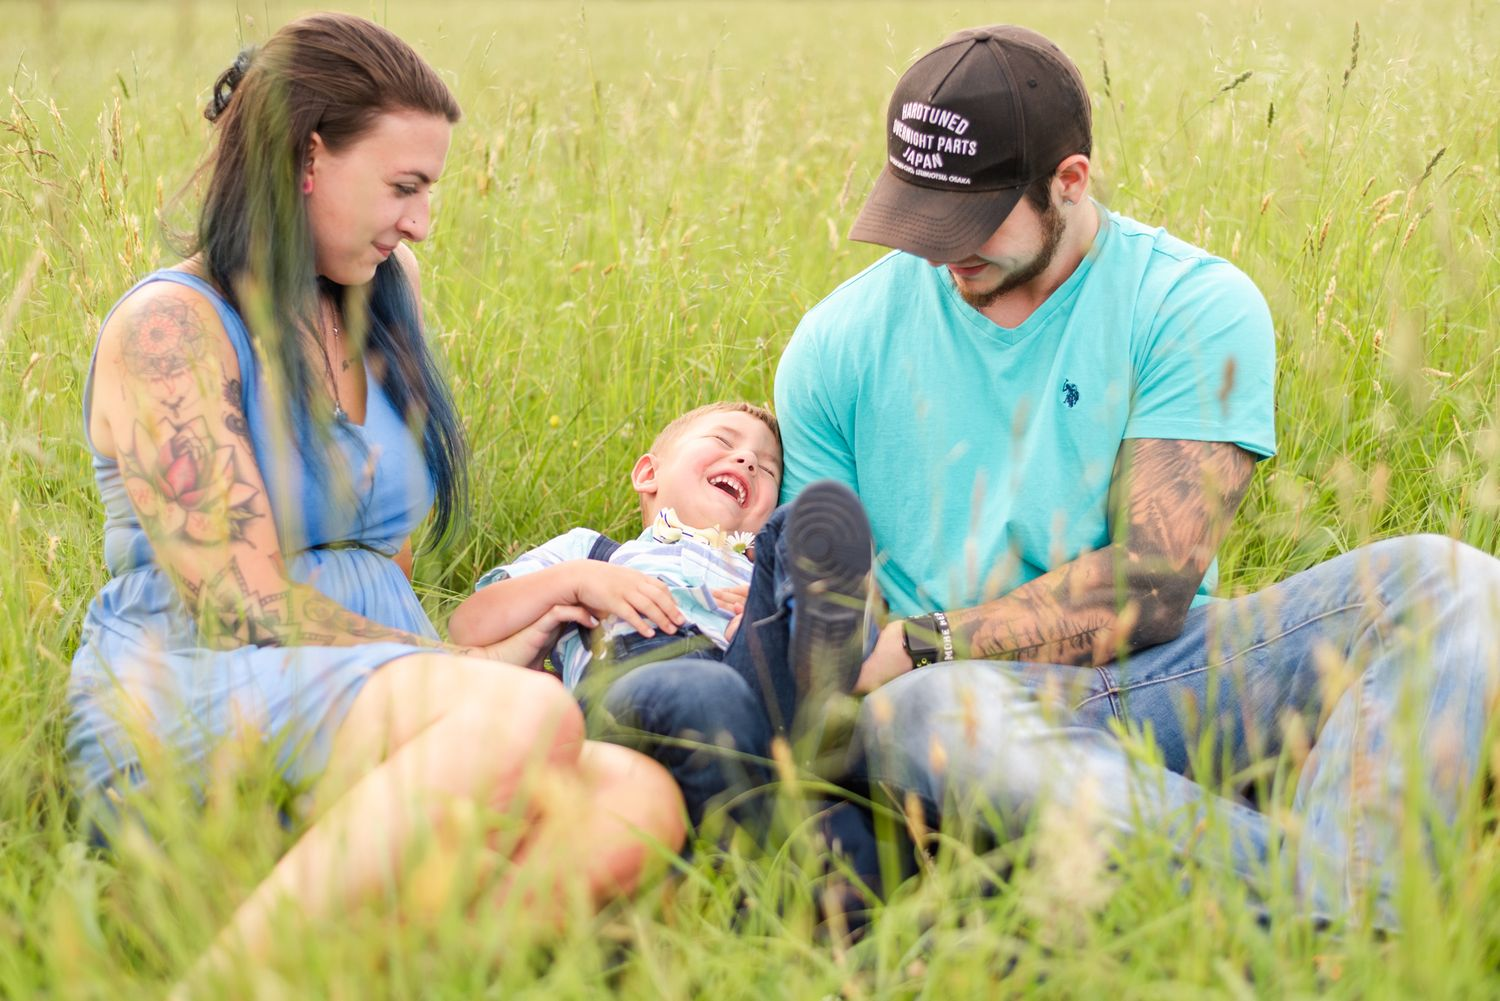 Little boy being tickled in field by mother and father in Clarion Pennsylvania